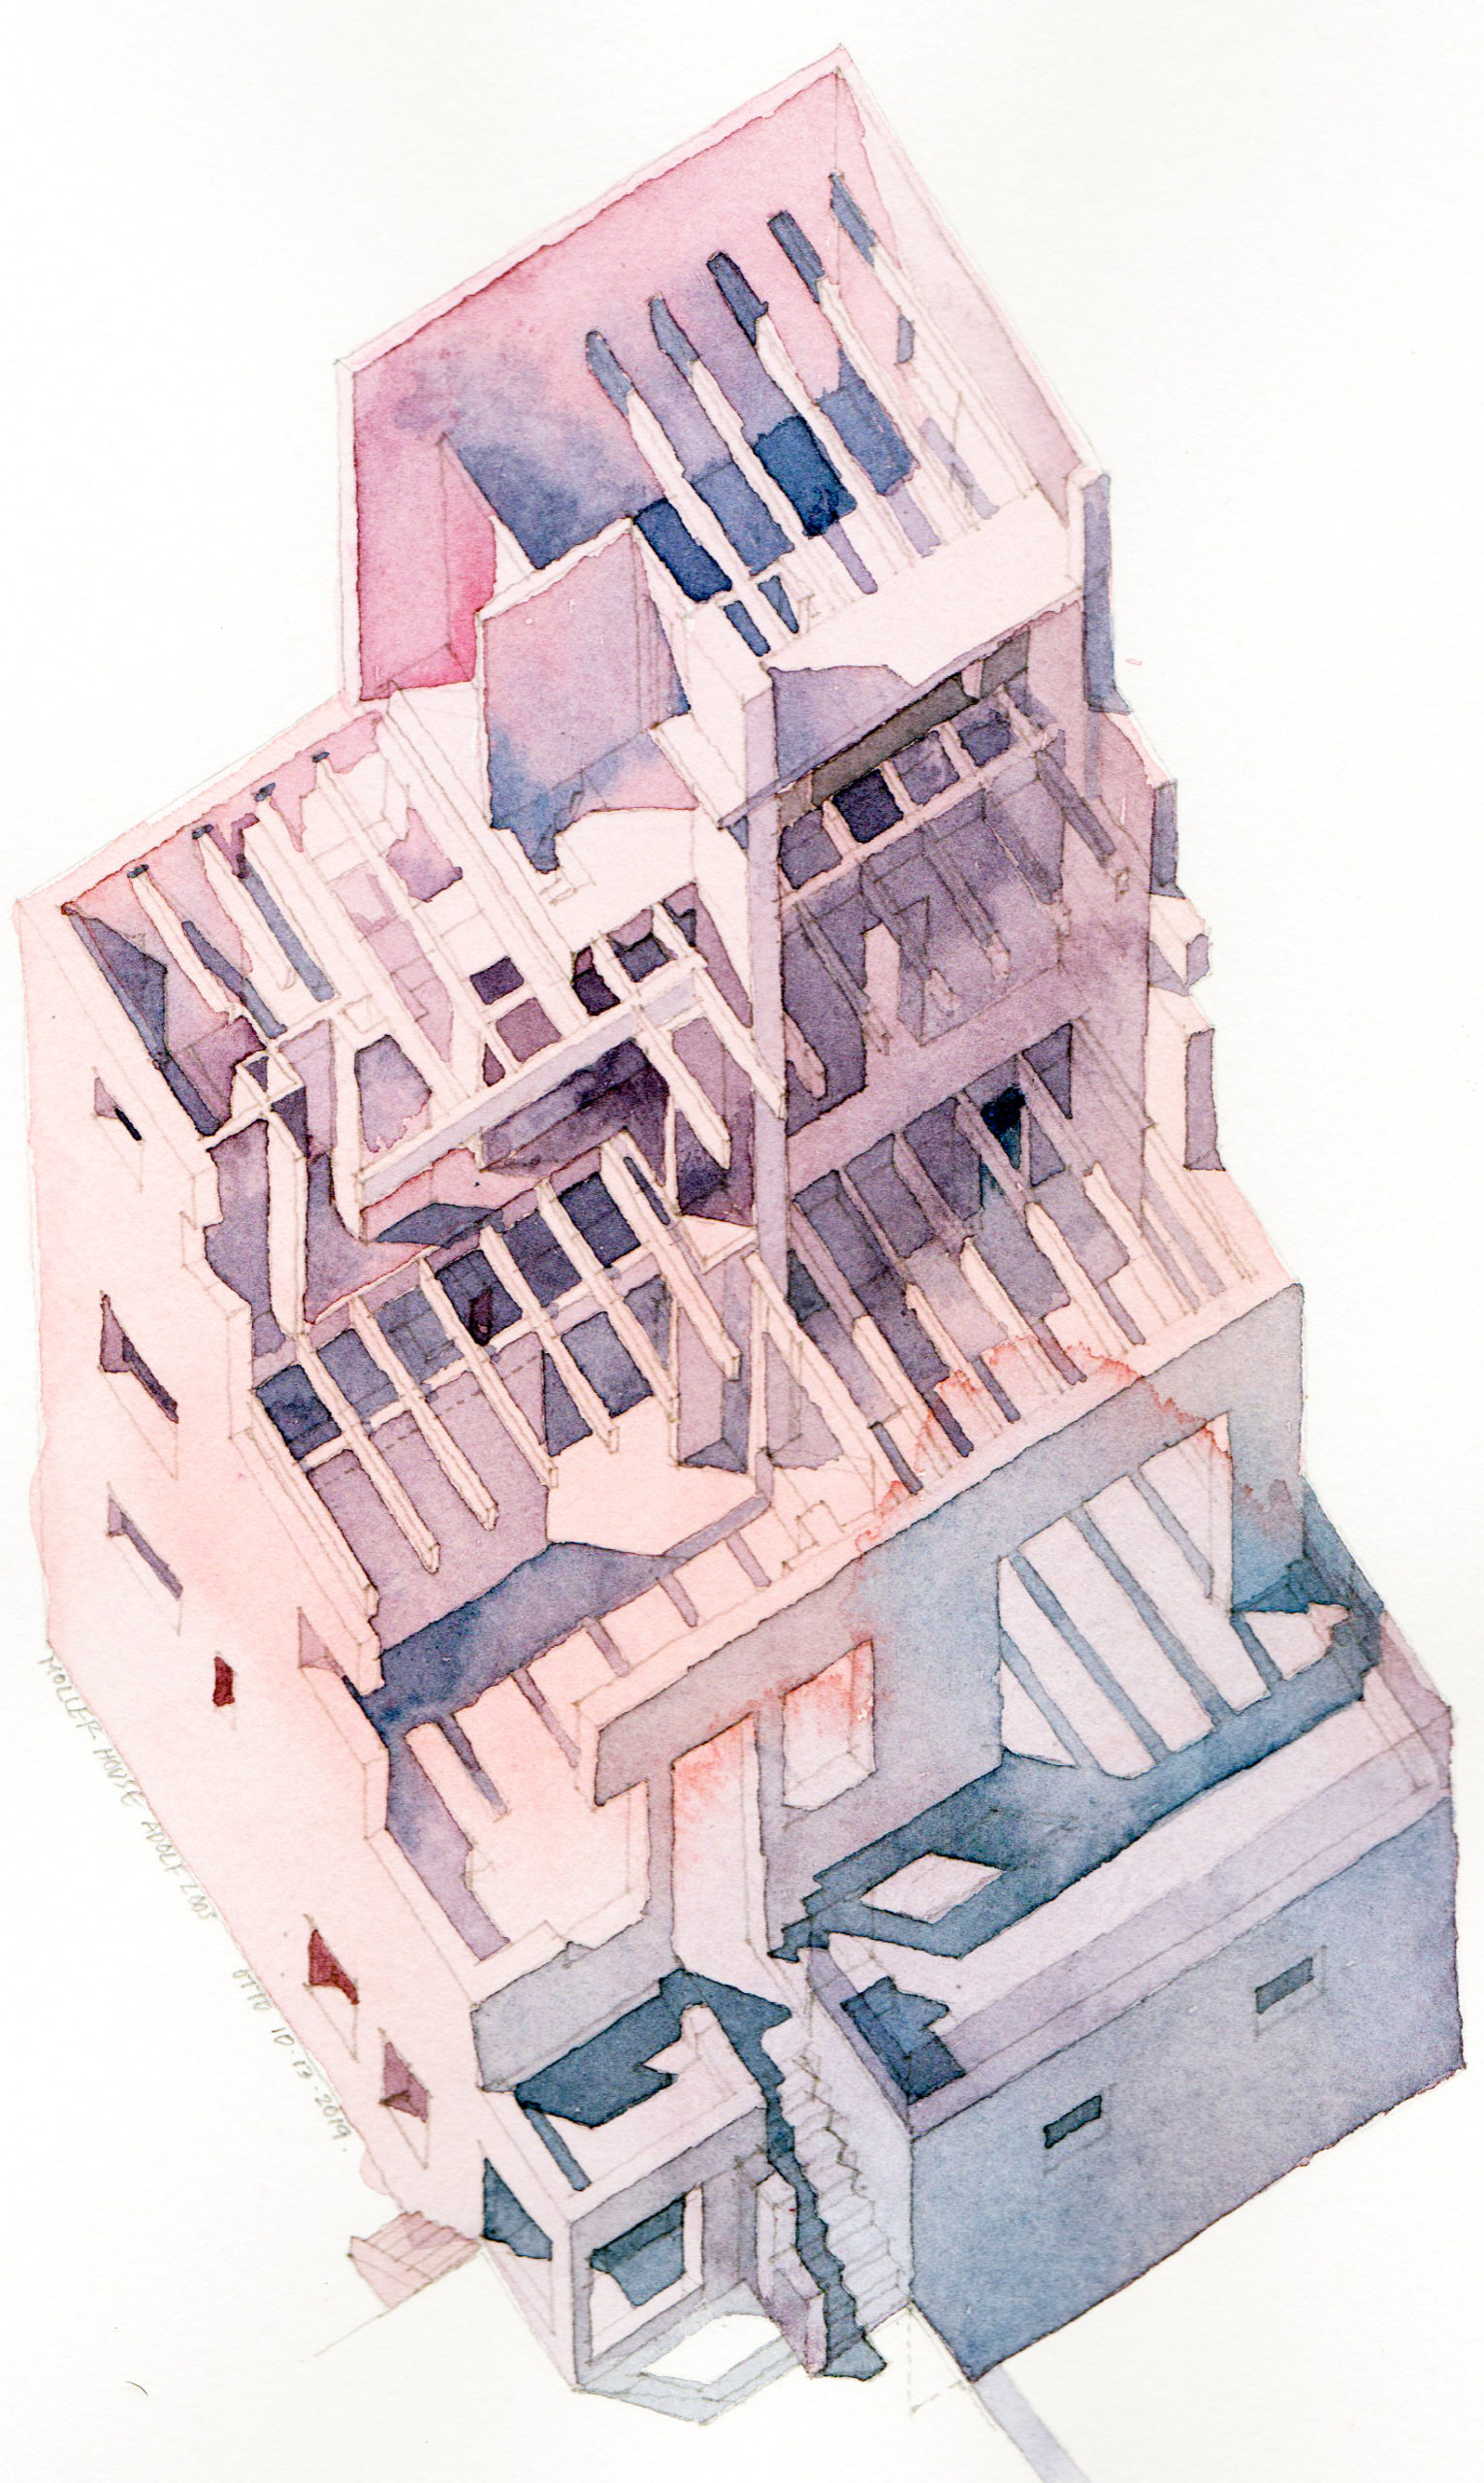 Axonometric painting of Moller House by Adolf Loos